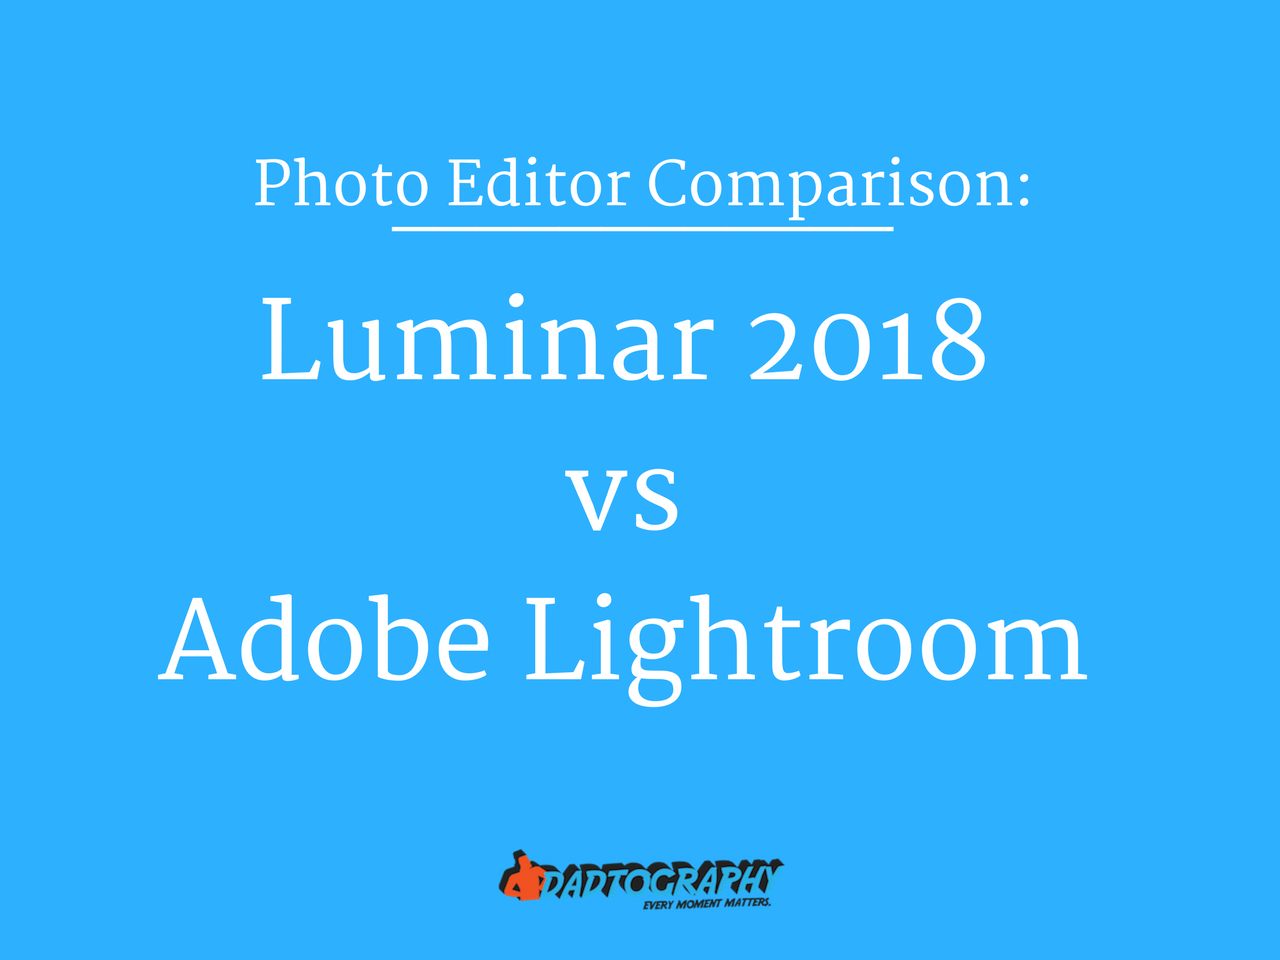 Photo Editor Compare Luminar 2018 vs Adobe Lightroom